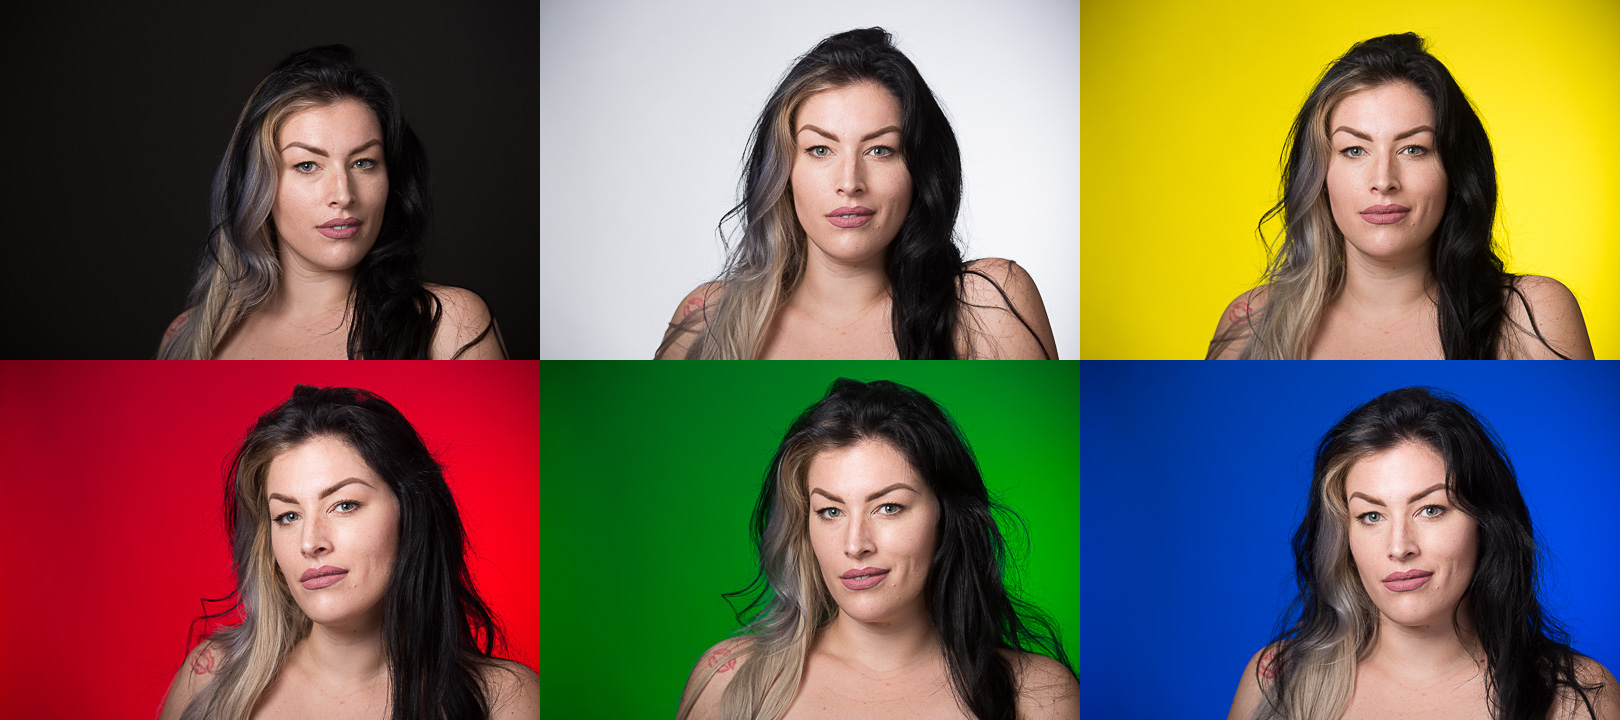 Do you know how to change the color of your background when you take the photo instead of having to do it in post-production?